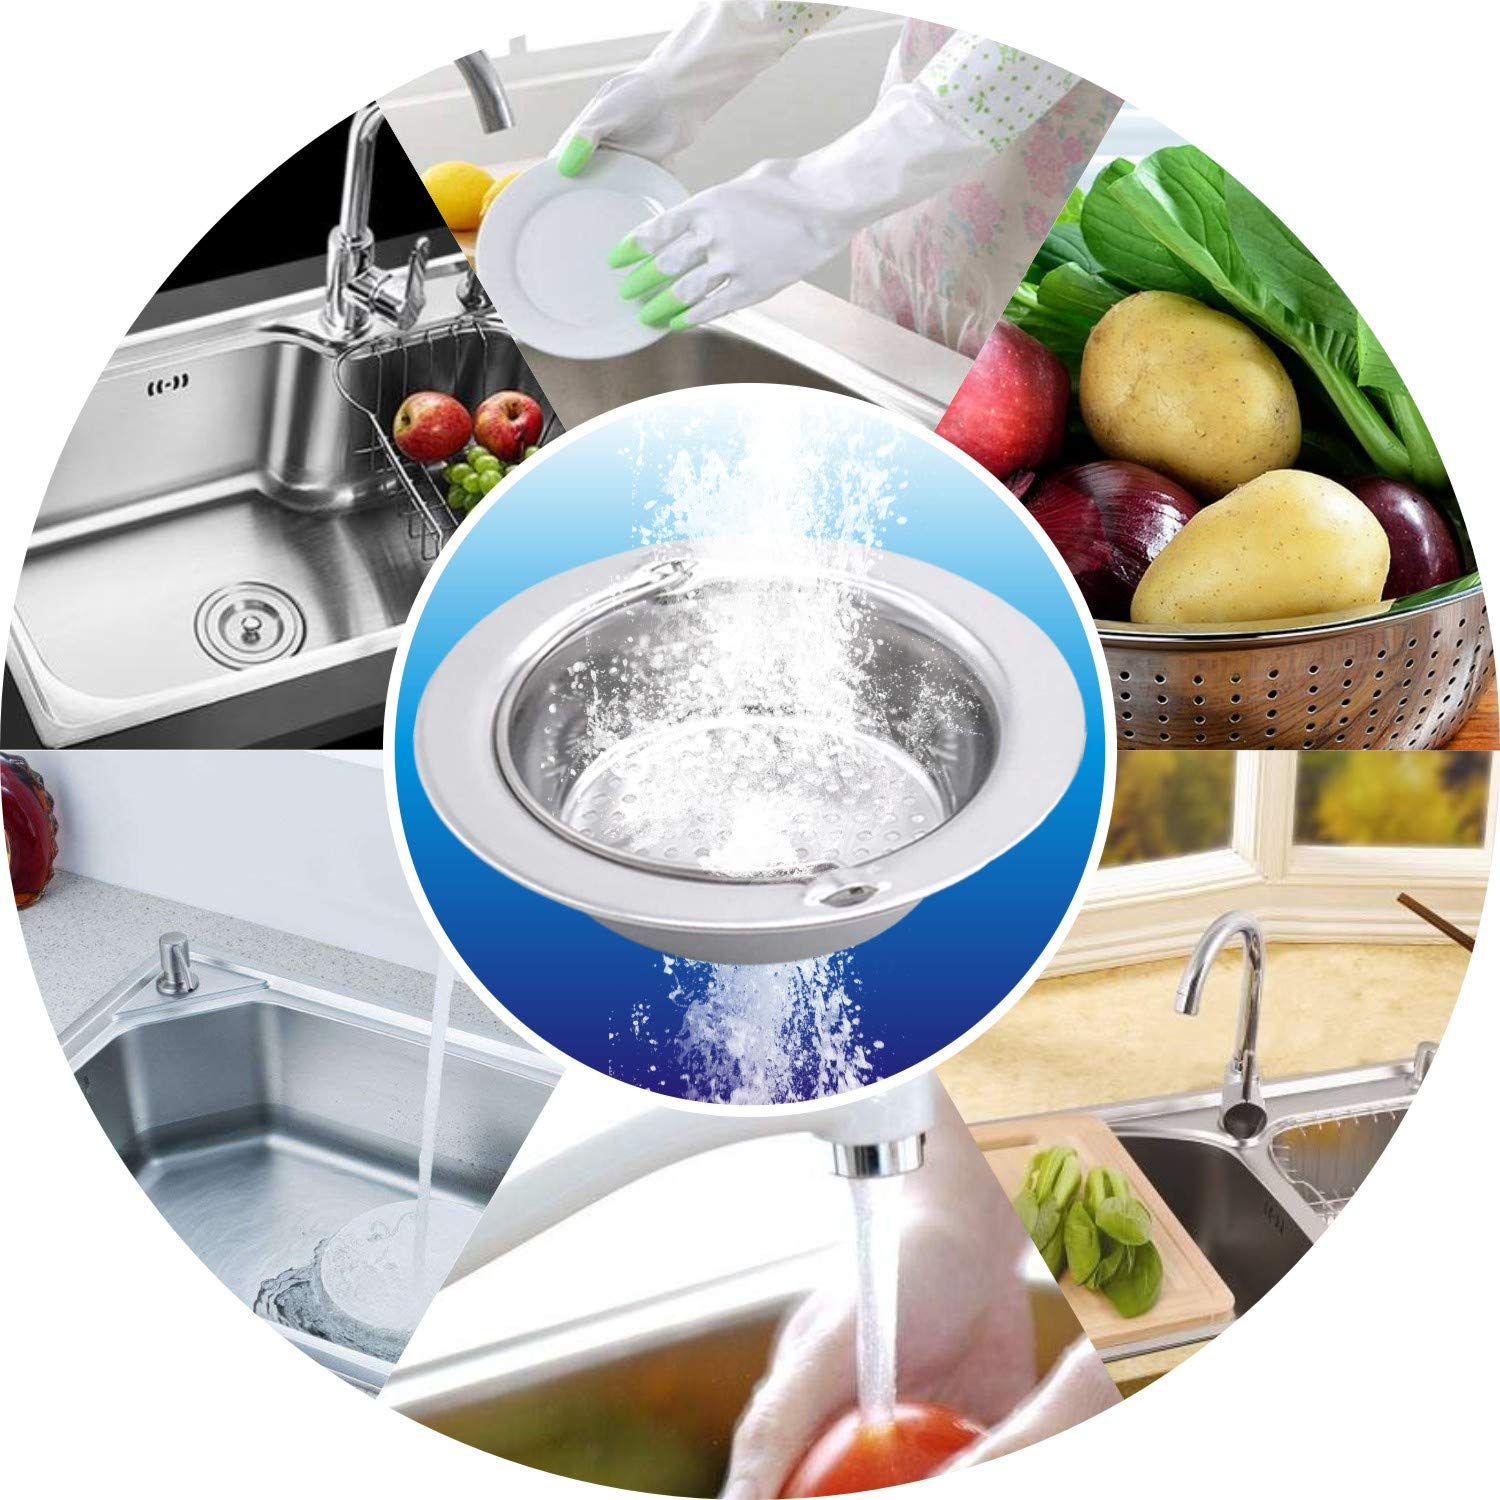 2PCS Stainless Steel Kitchen Sink Basket Strainer with Handle Garbage Disposal Stopper Mesh Basket, Kitchen Sink Strainer Baskets, Wide Rim 4.33\